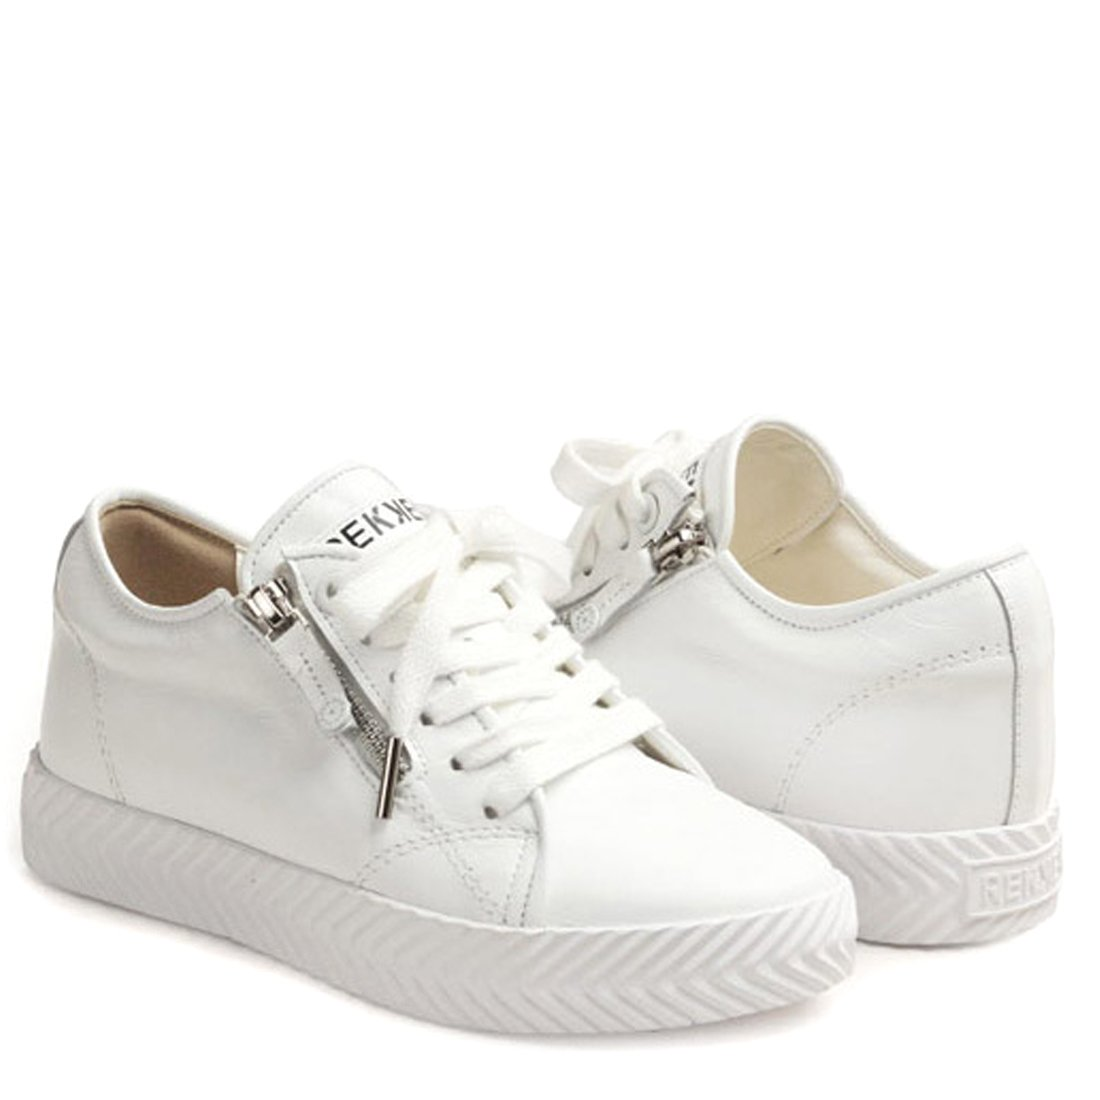 RACHEL COX Womens Classic Casual Shoes Sneakers with Side Zipper